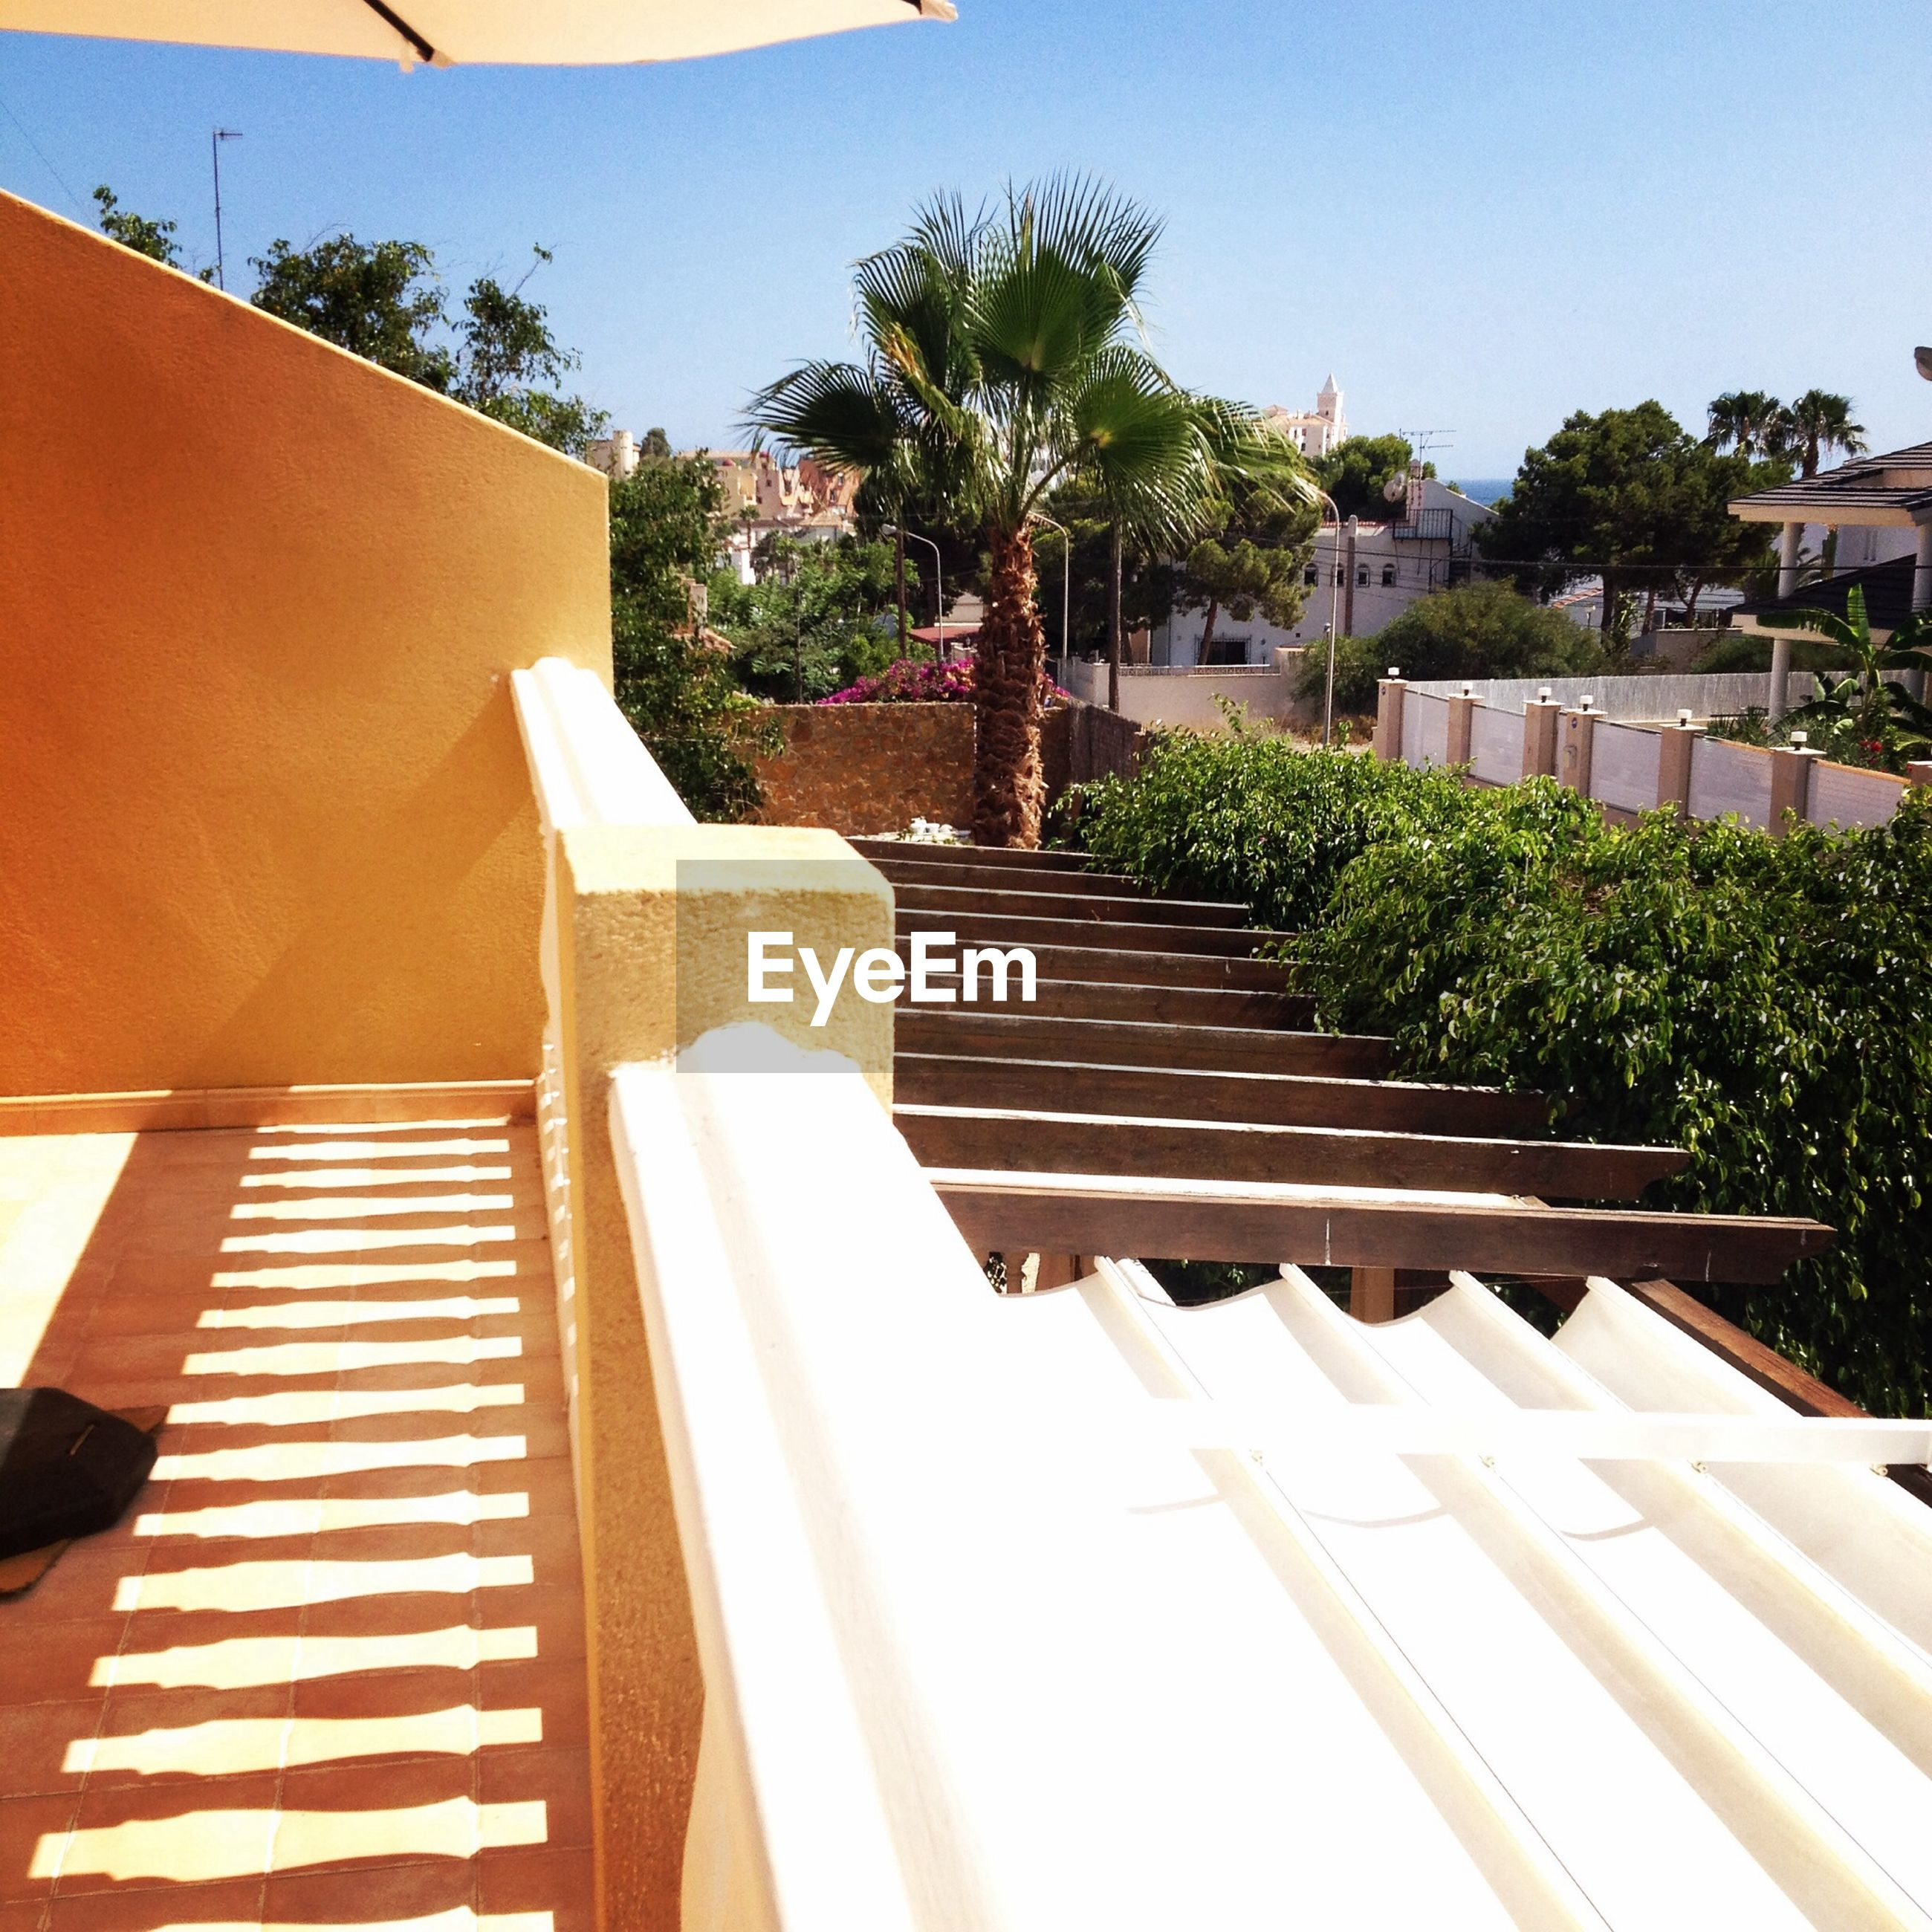 building exterior, architecture, built structure, low angle view, roof, tree, clear sky, sunlight, house, steps, sky, railing, steps and staircases, no people, day, residential building, residential structure, building, shadow, outdoors